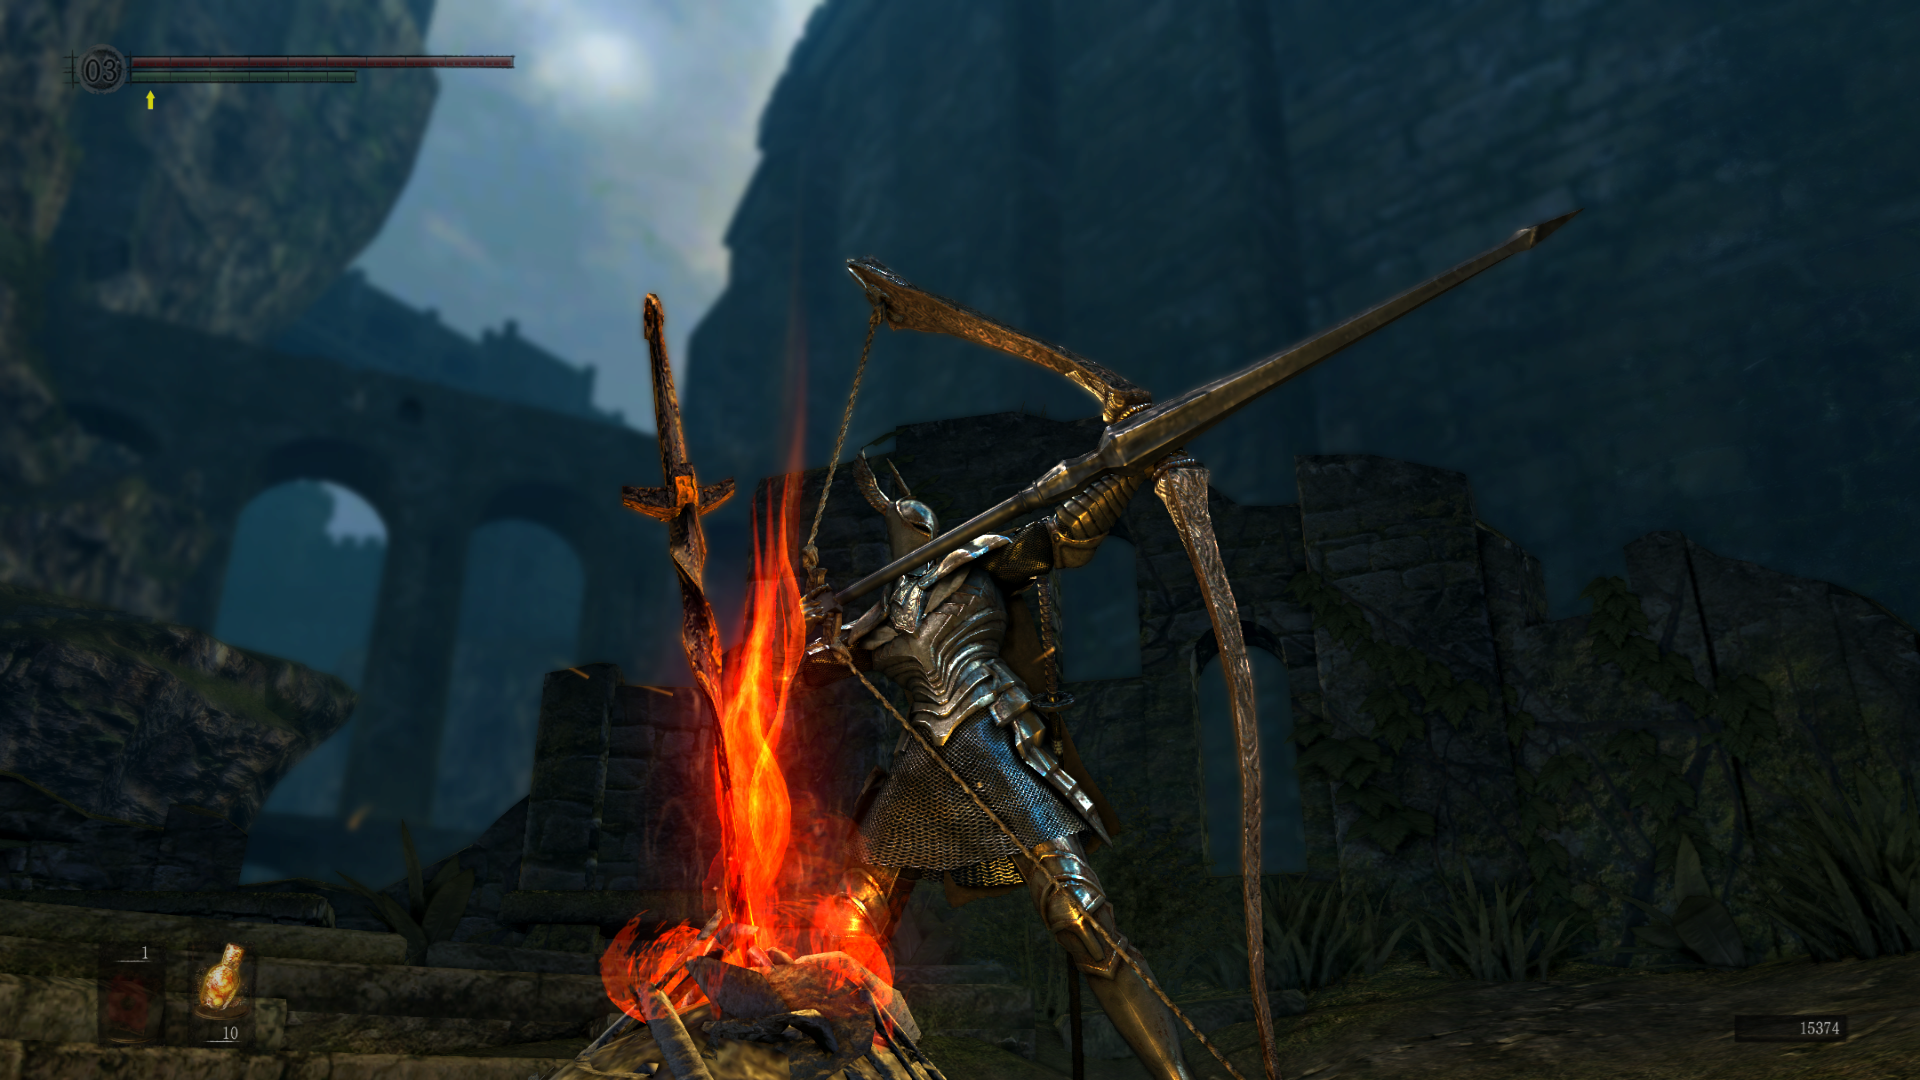 Bonfire Dark Souls Hd Wallpaper Background Image 1920x1080